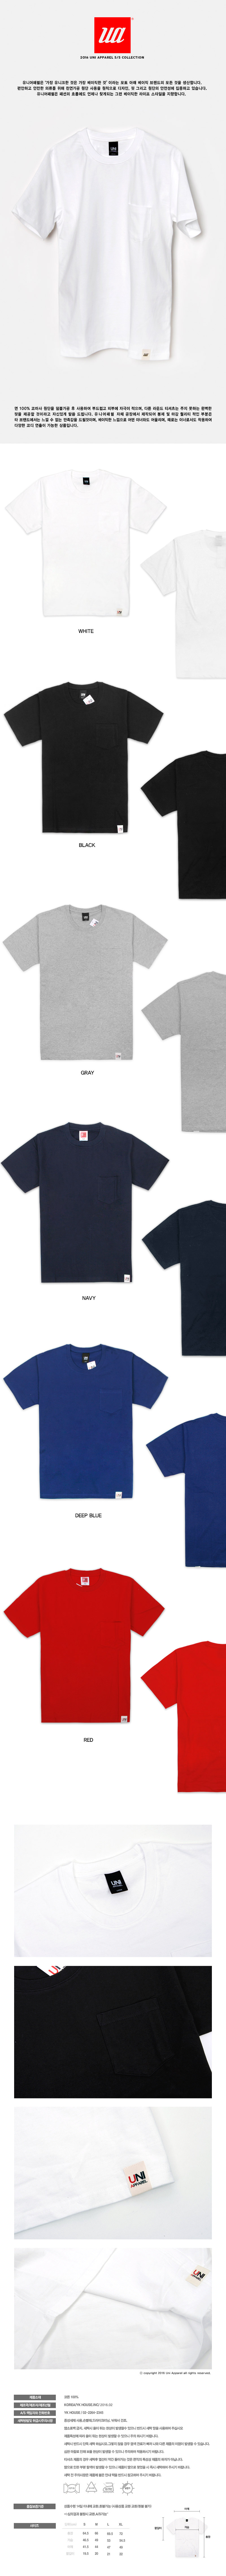 basic-pocket-tee.jpg